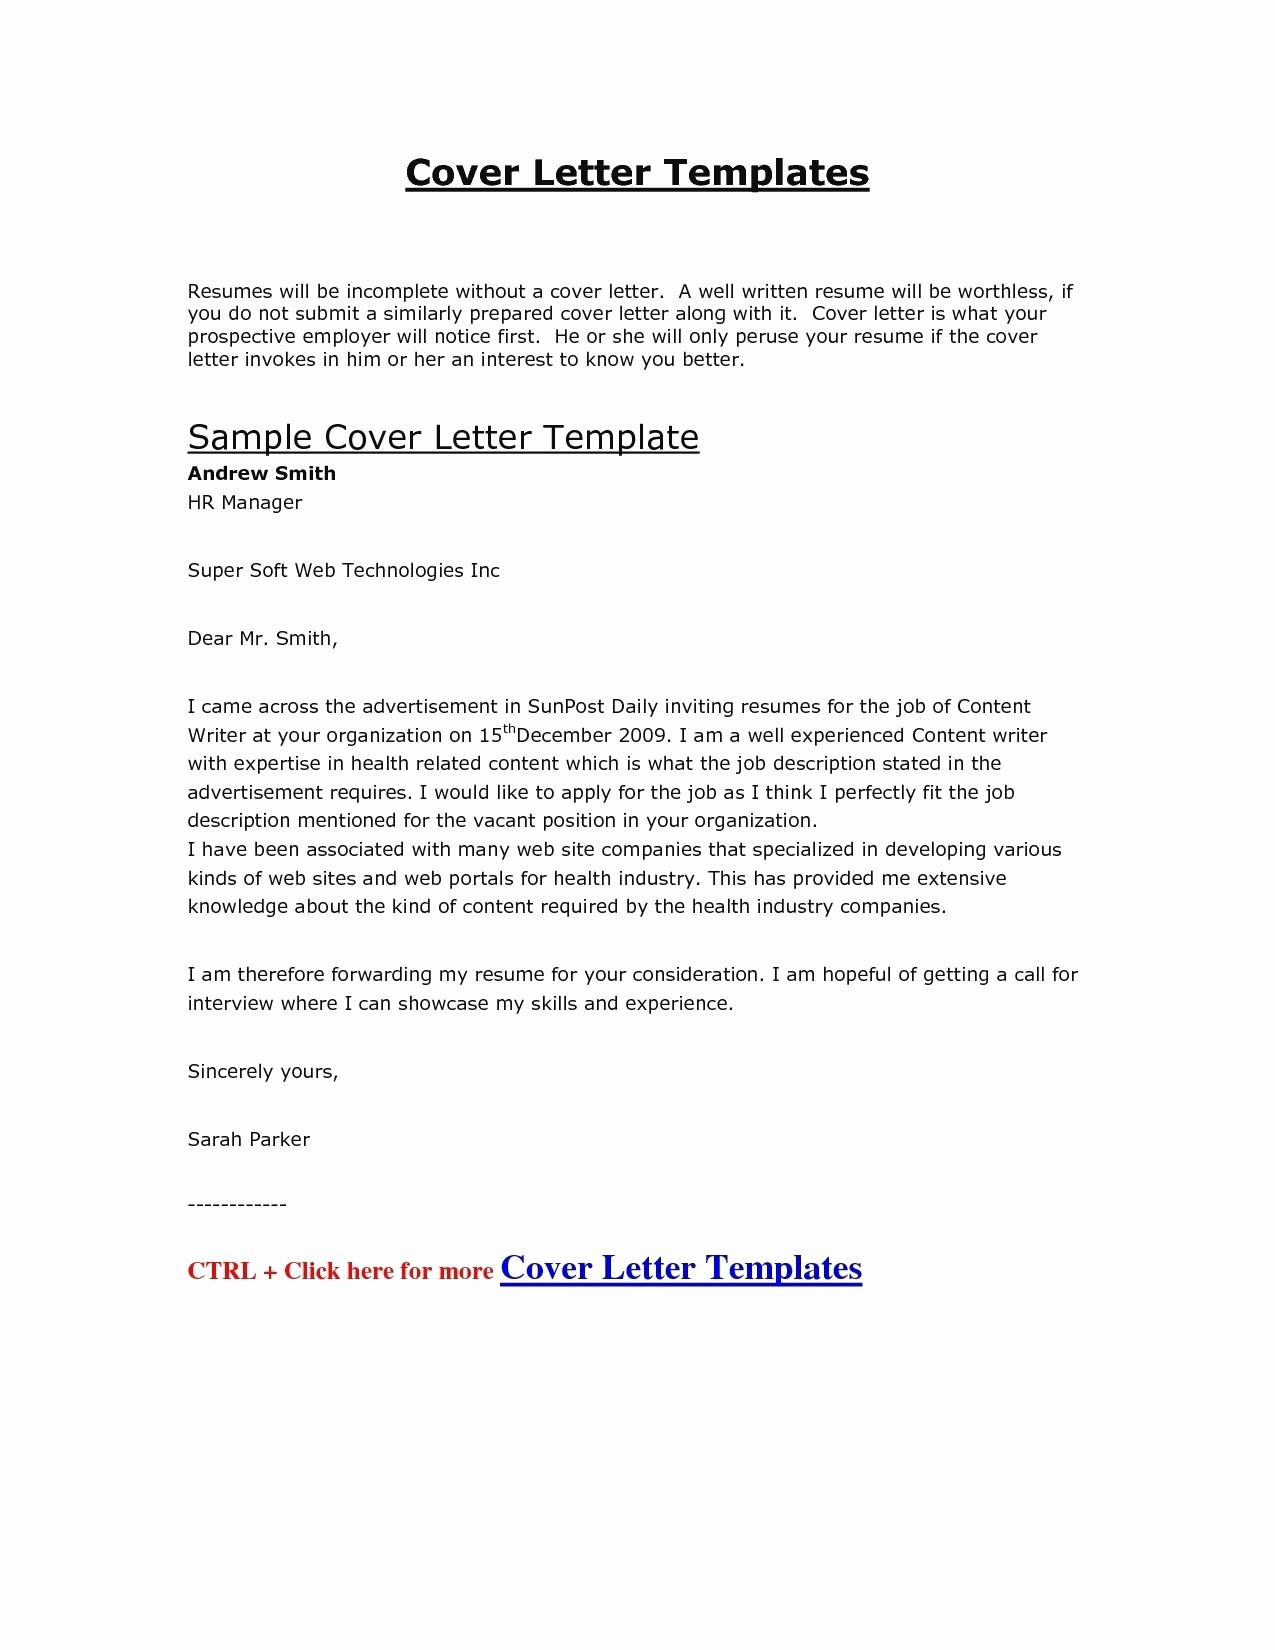 Formal Cover Letter Template - Job Application Letter format Template Copy Cover Letter Template Hr